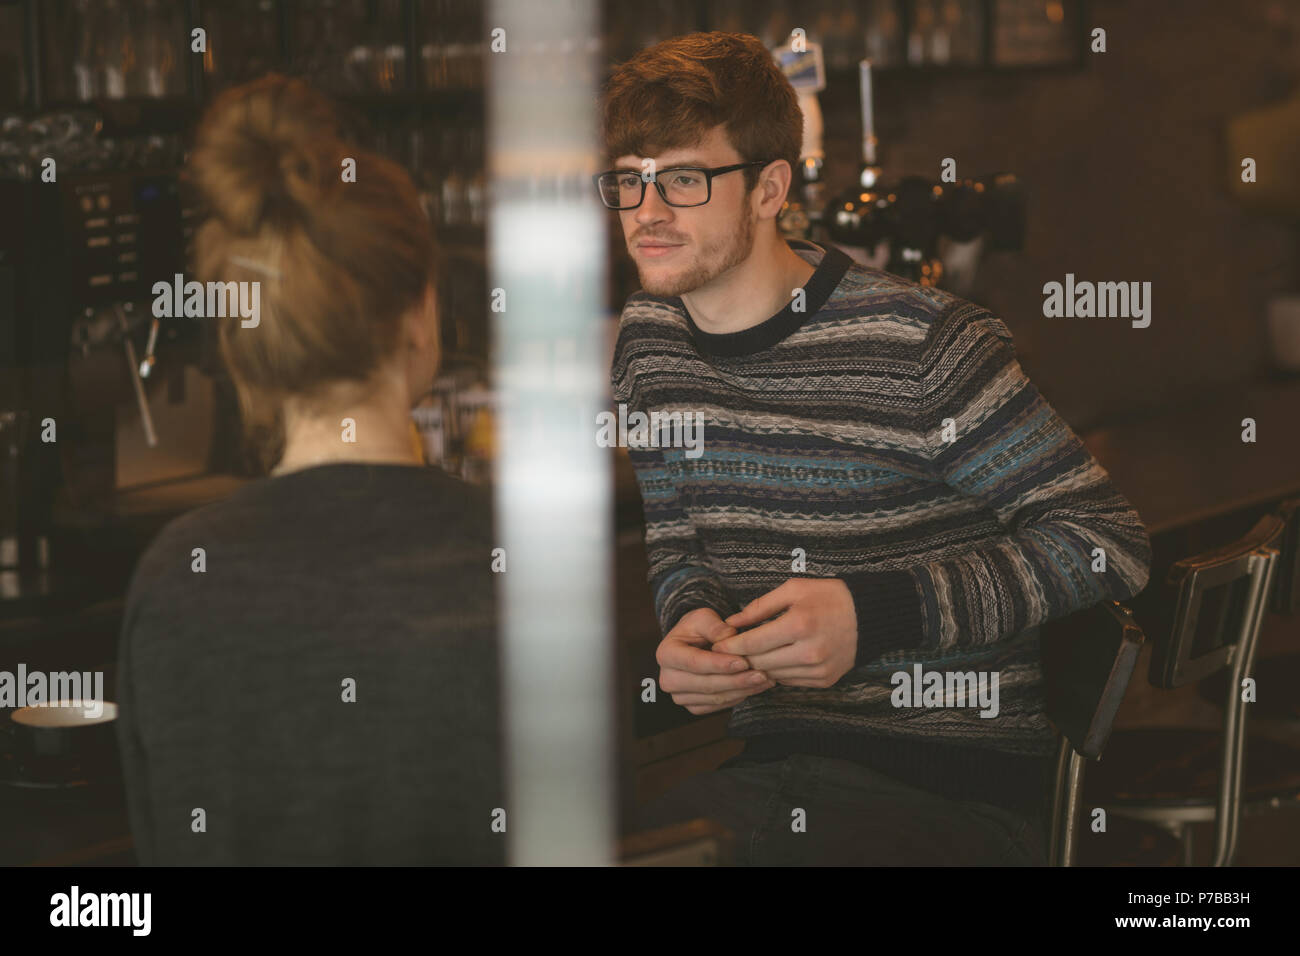 Couple talking to each other in the cafe - Stock Image